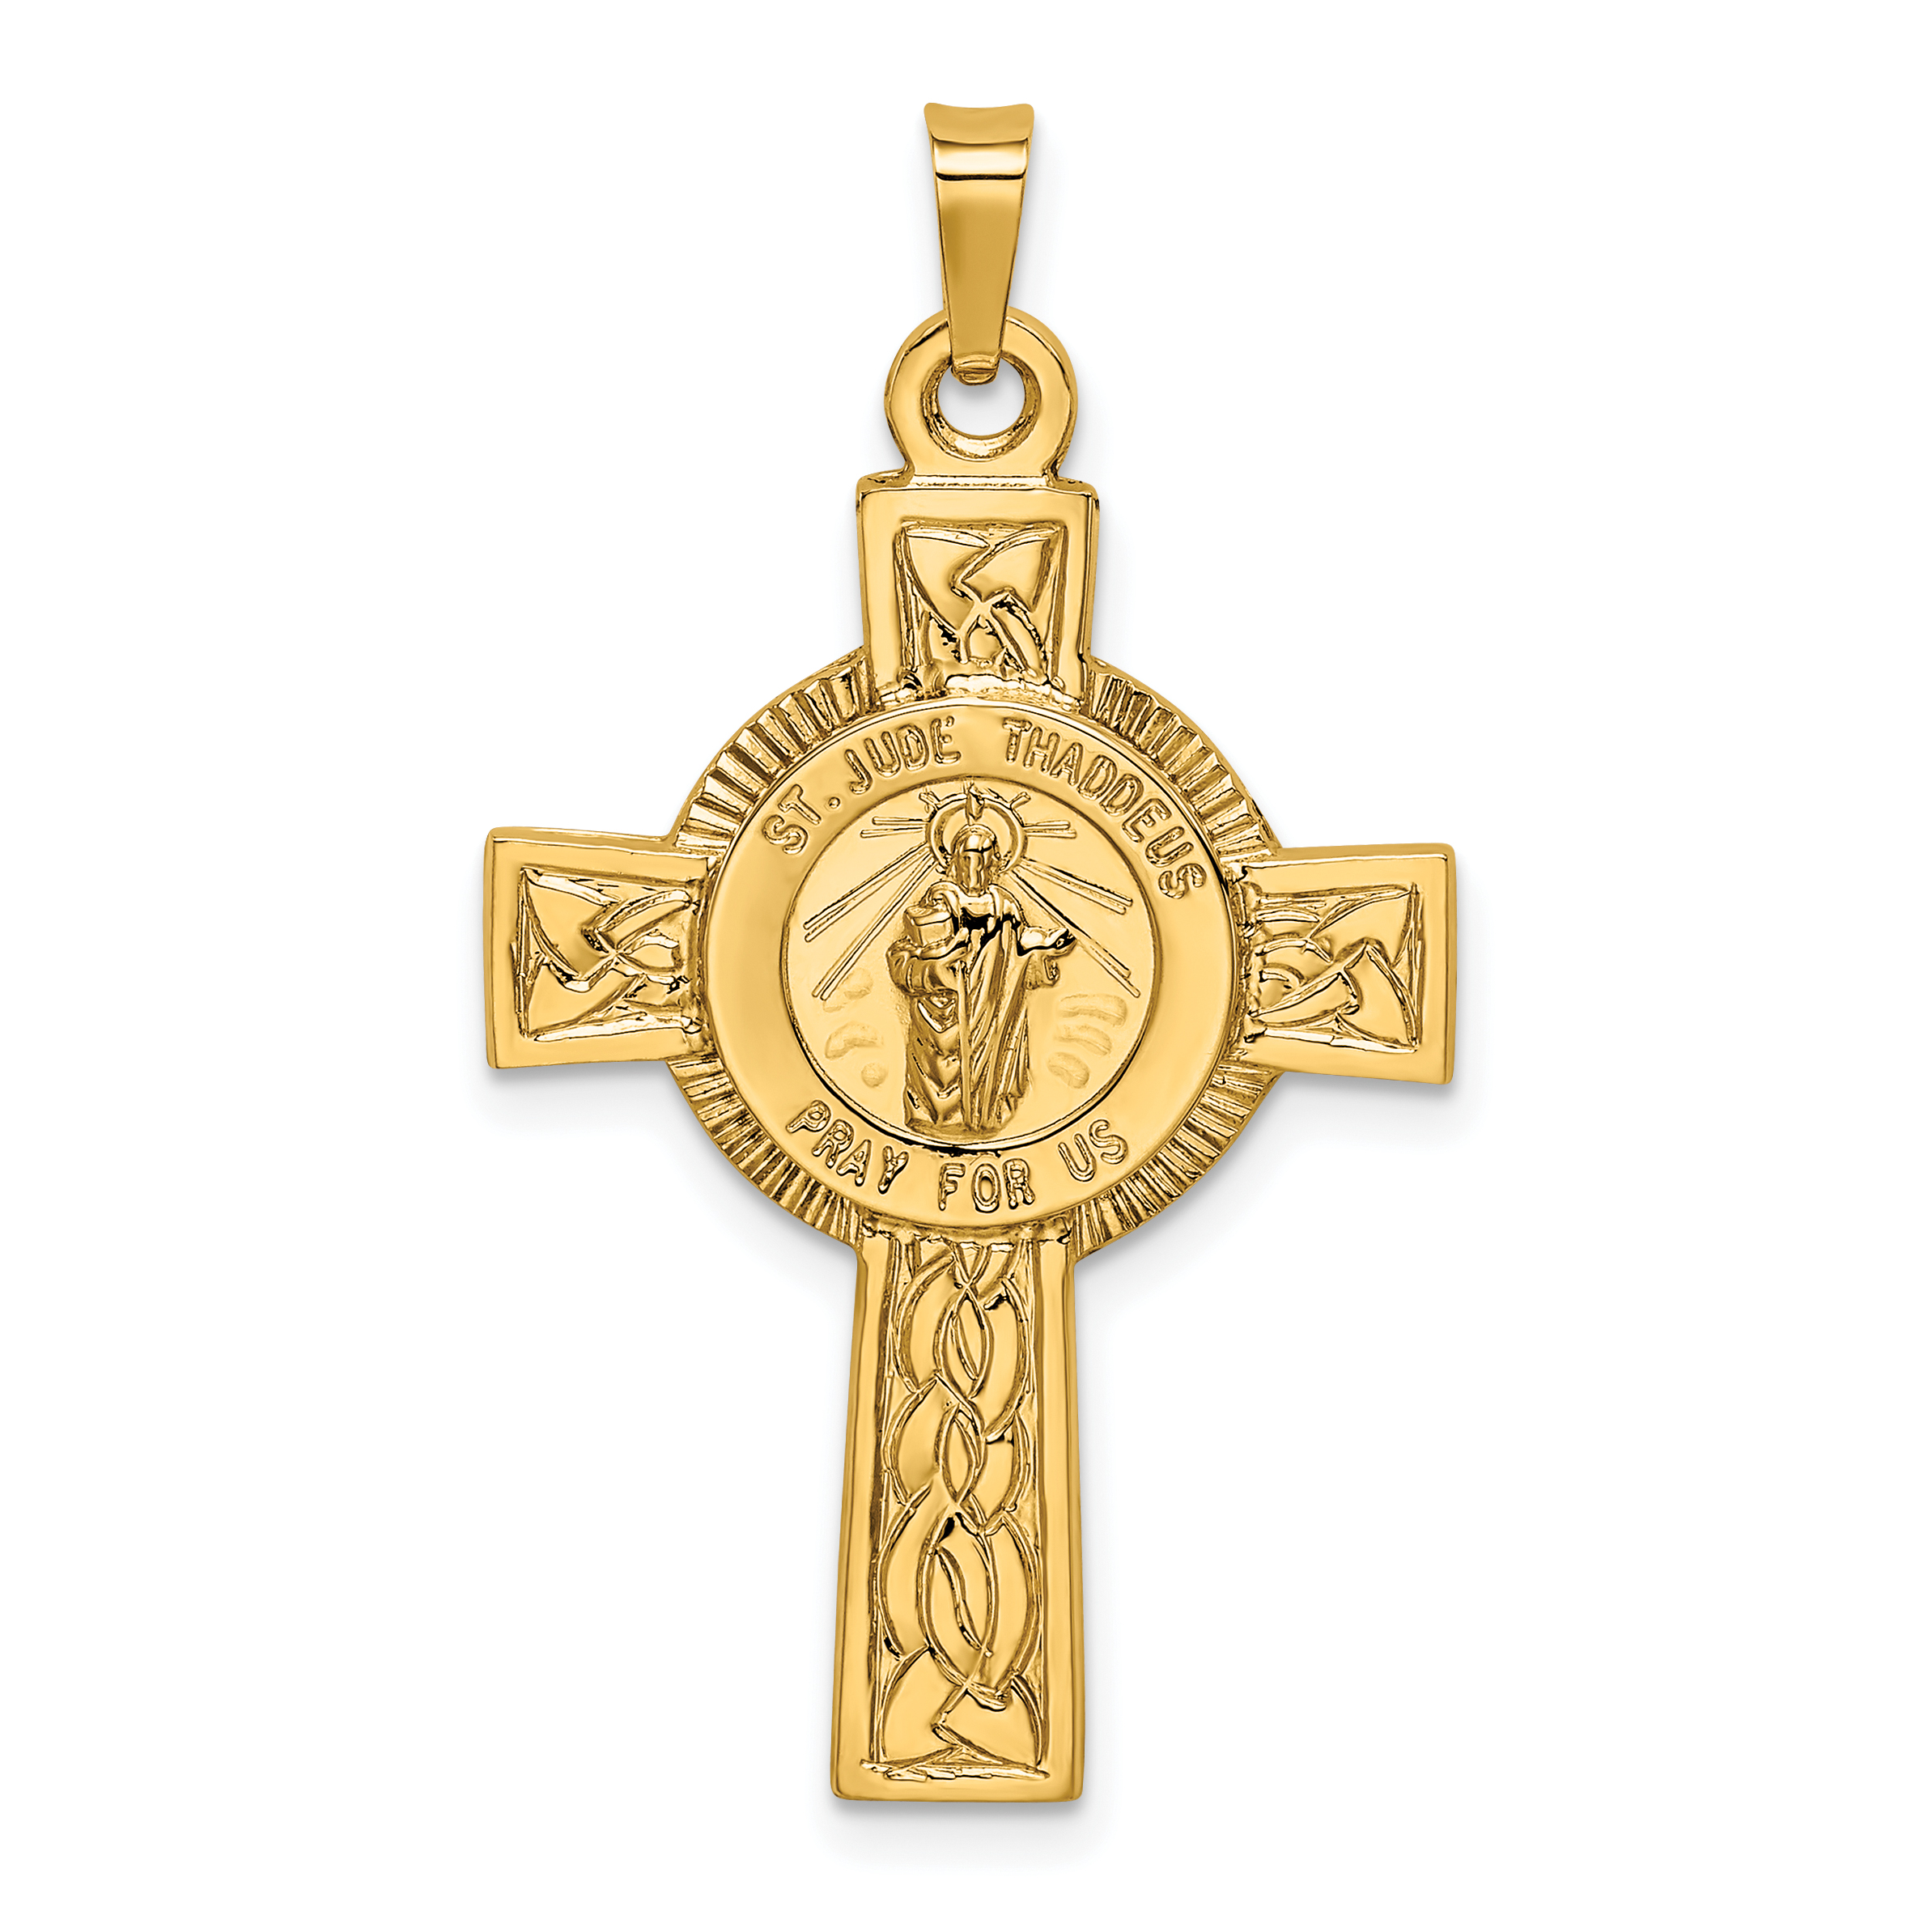 14K Yellow Gold Cross w/St. Jude Medal Pendant - image 2 de 2